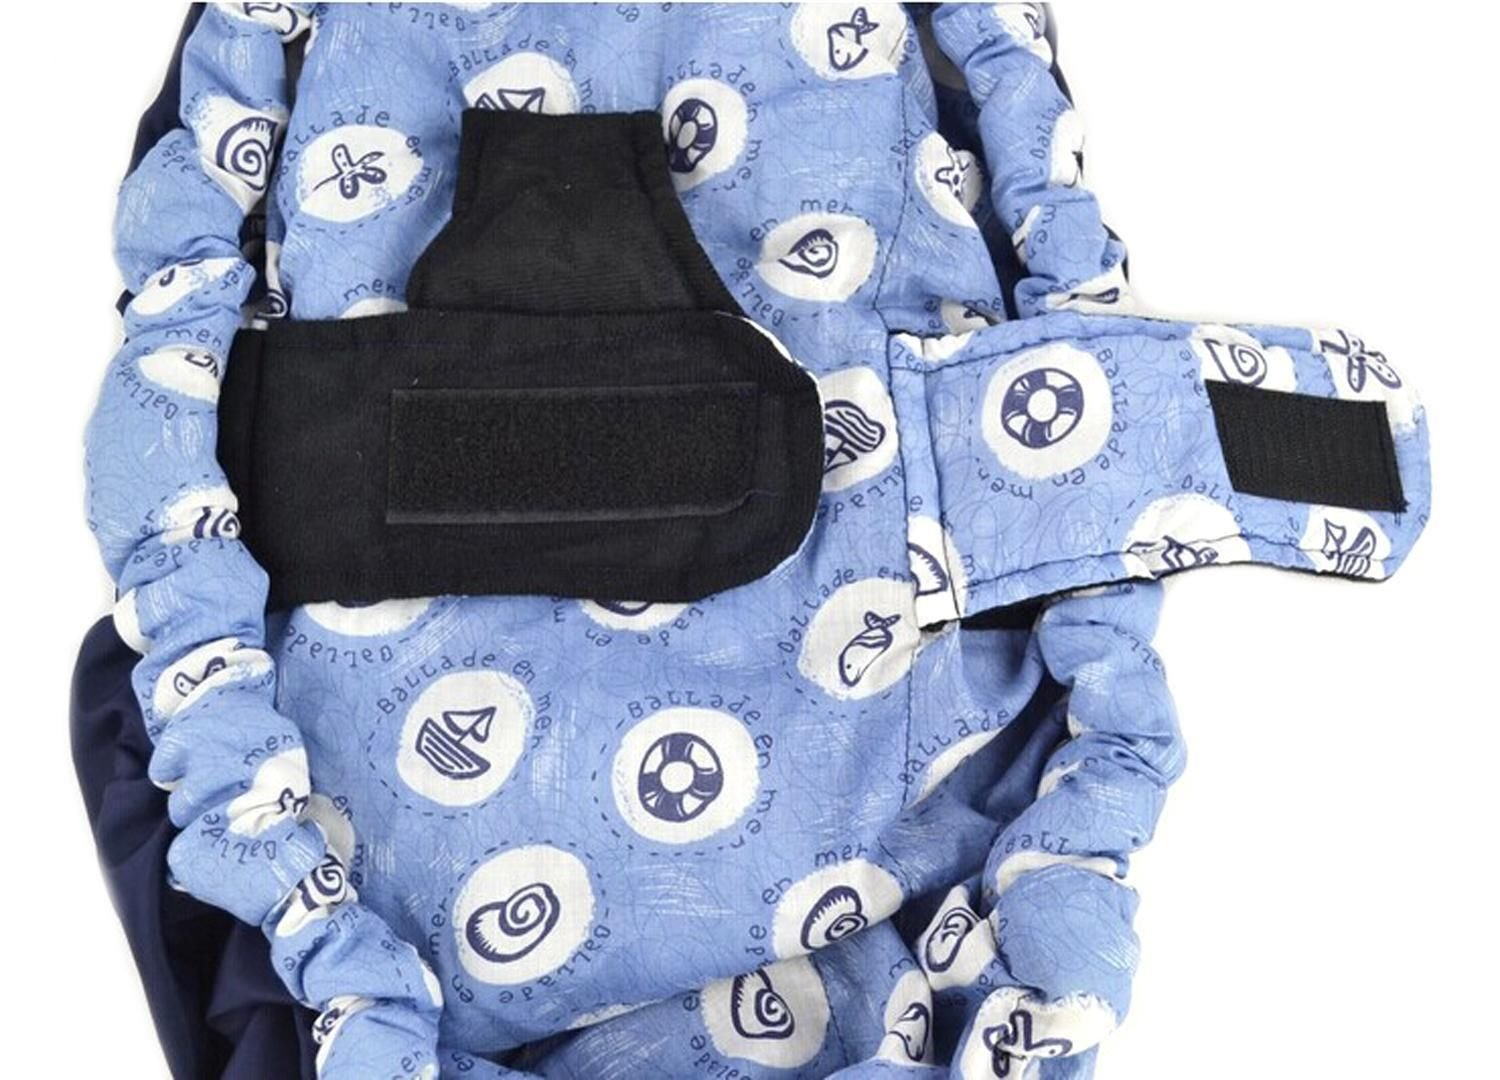 New Infant Baby Carrier Newborn Kid Sling Wrap Rider Backpack Comfort